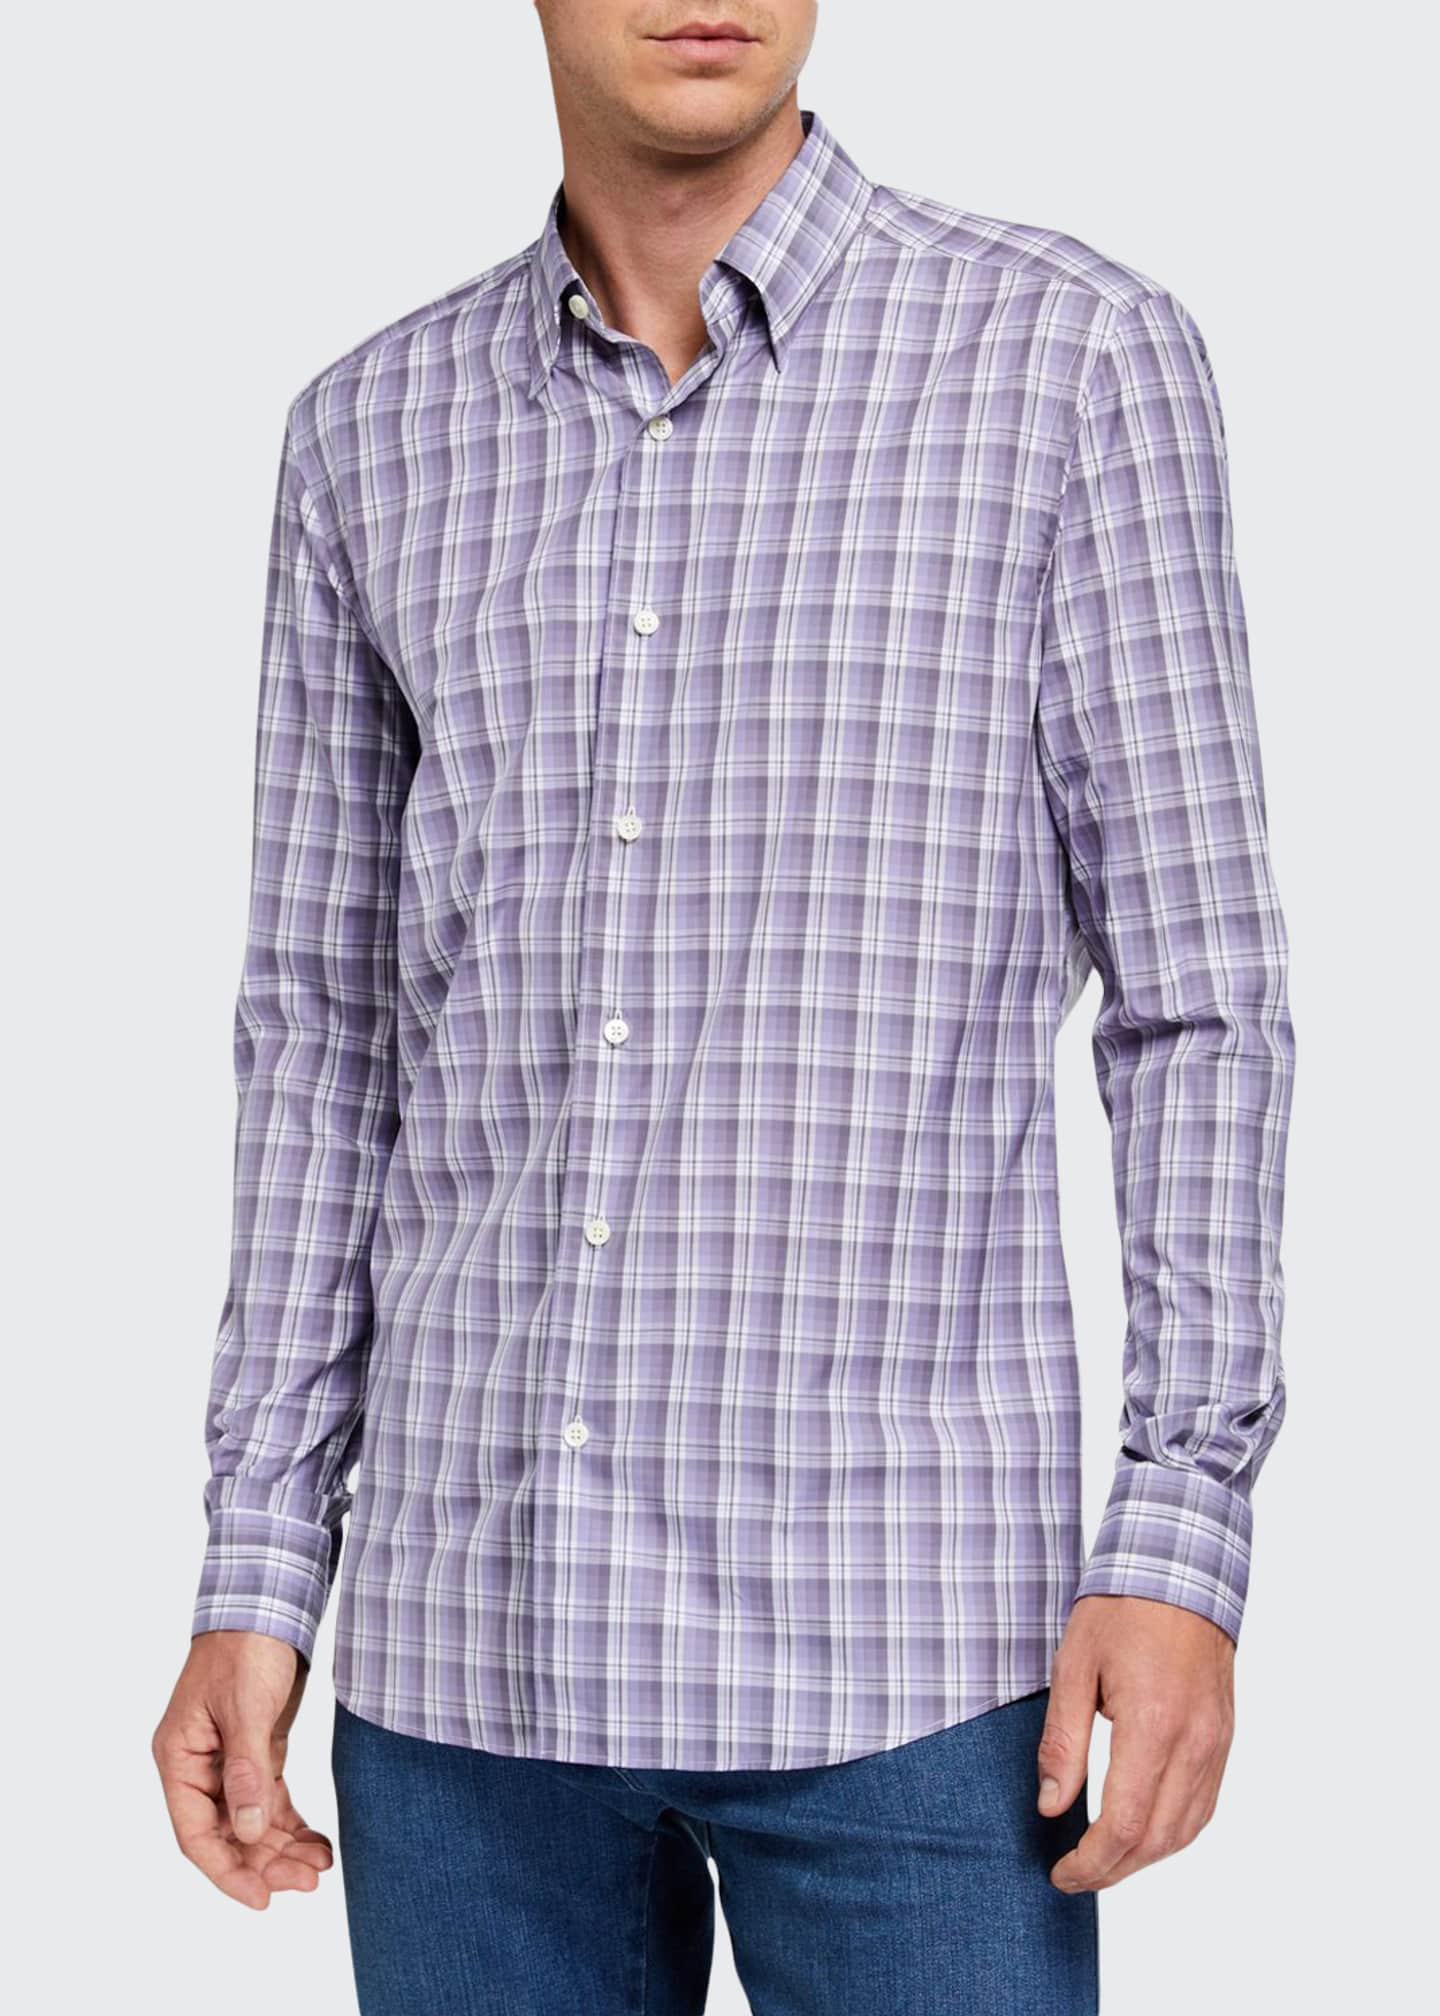 Ermenegildo Zegna Men's Cento Quaranta Plaid Sport Shirt